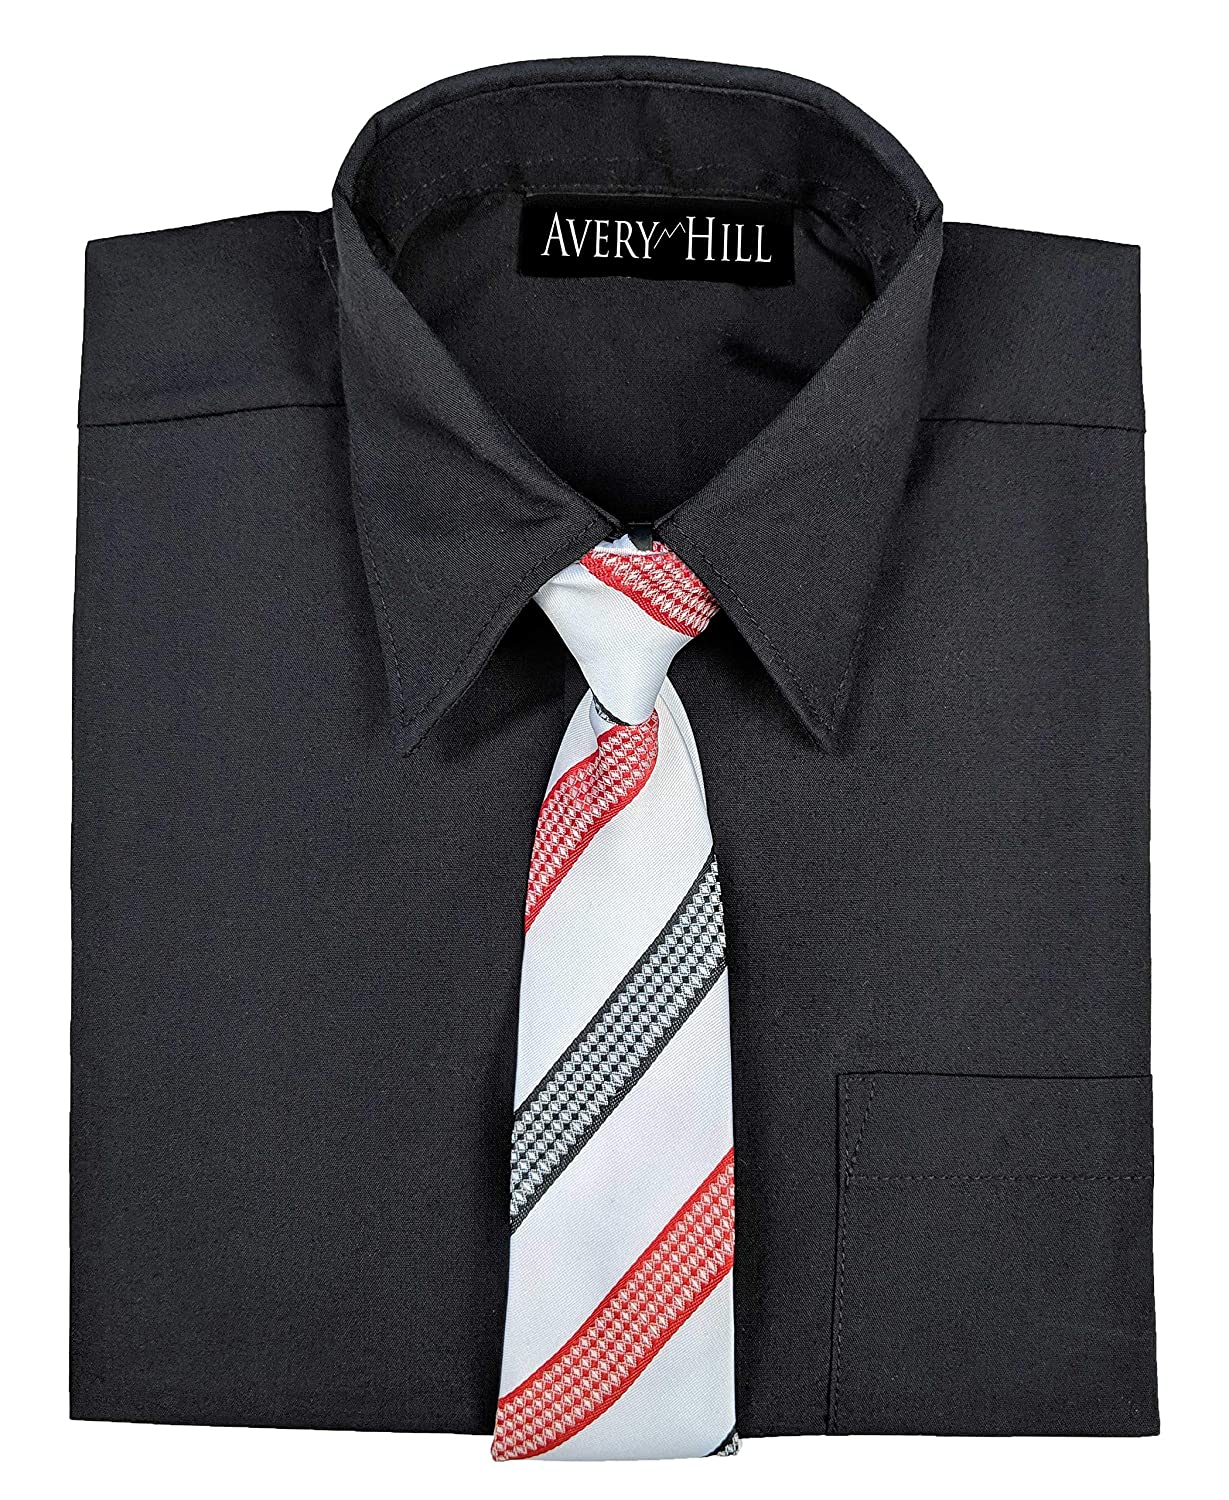 Avery Hill Boys Short Sleeve Dress Shirt Windsor Tie